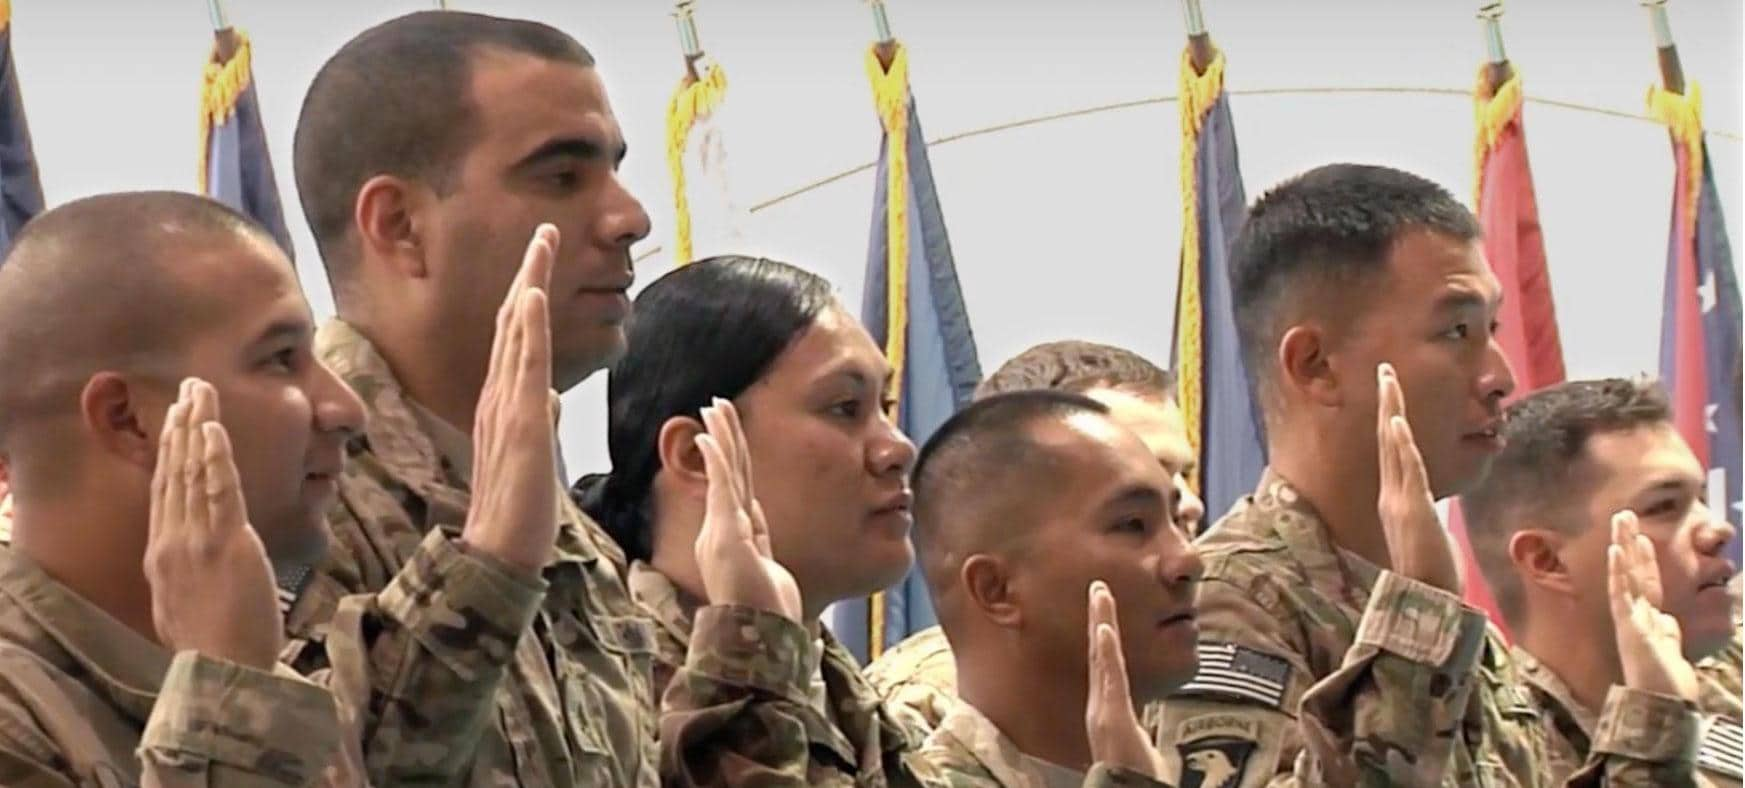 Troops taking an Oath